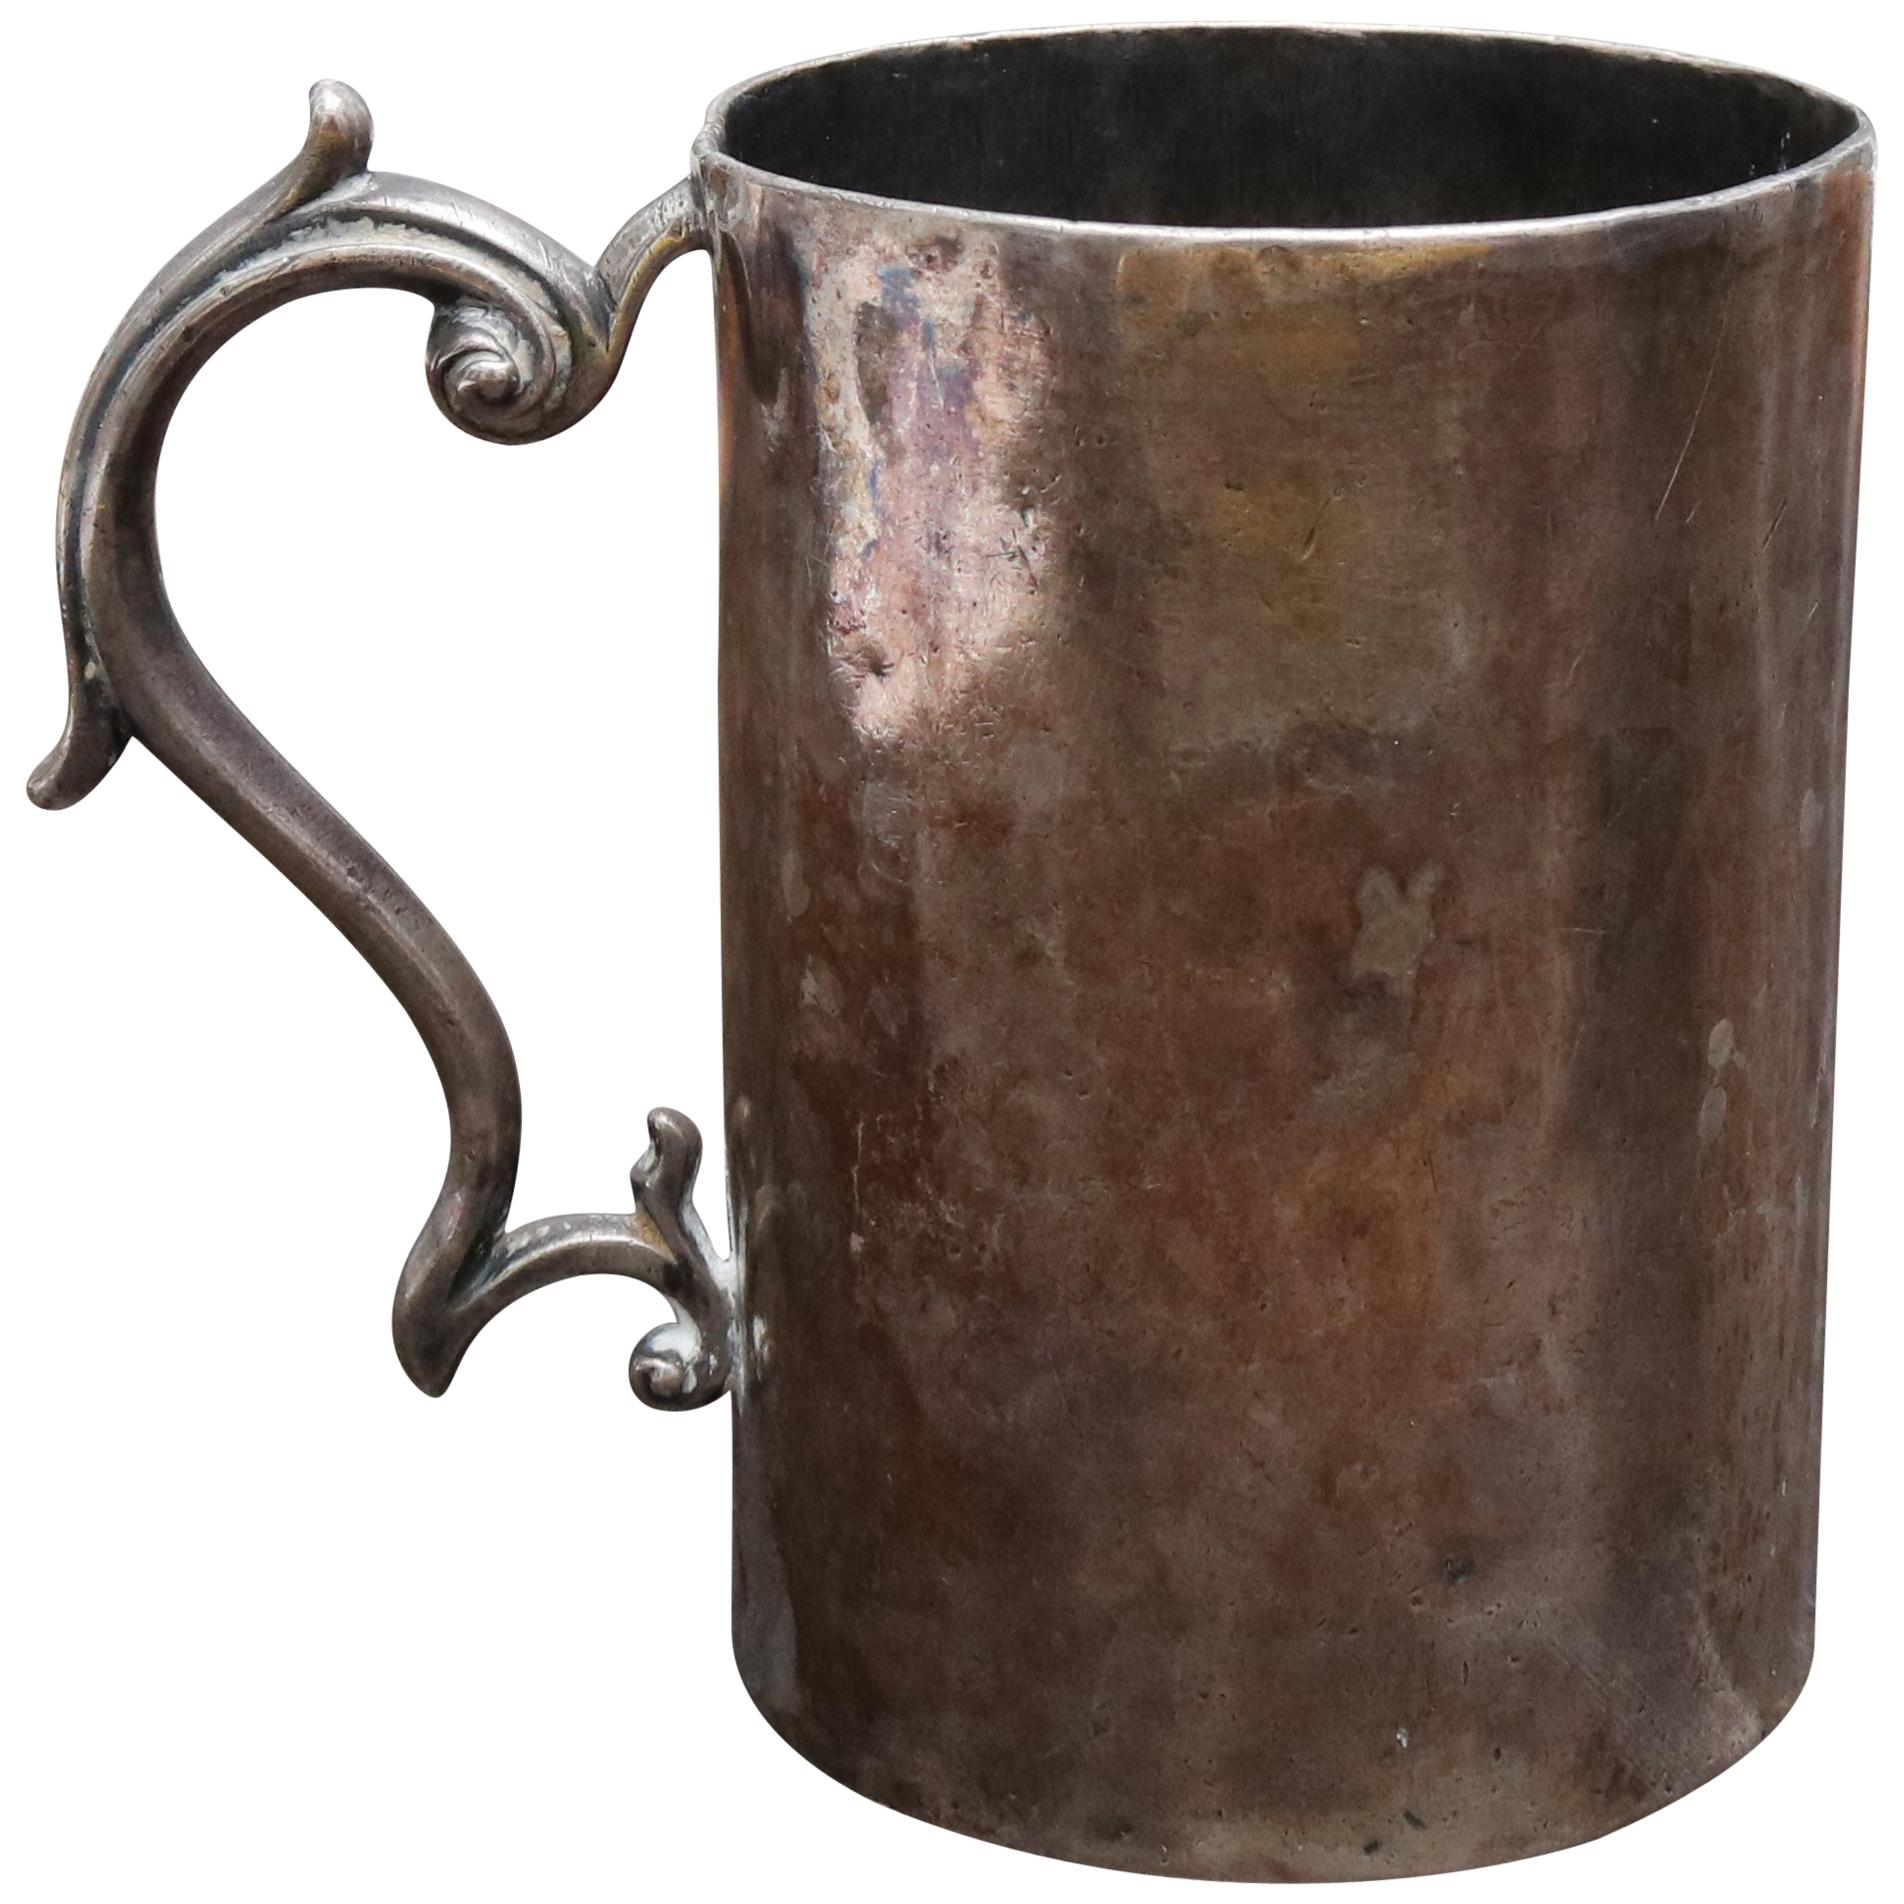 18th Century Silver Cup with Handle Possibly Bolivian